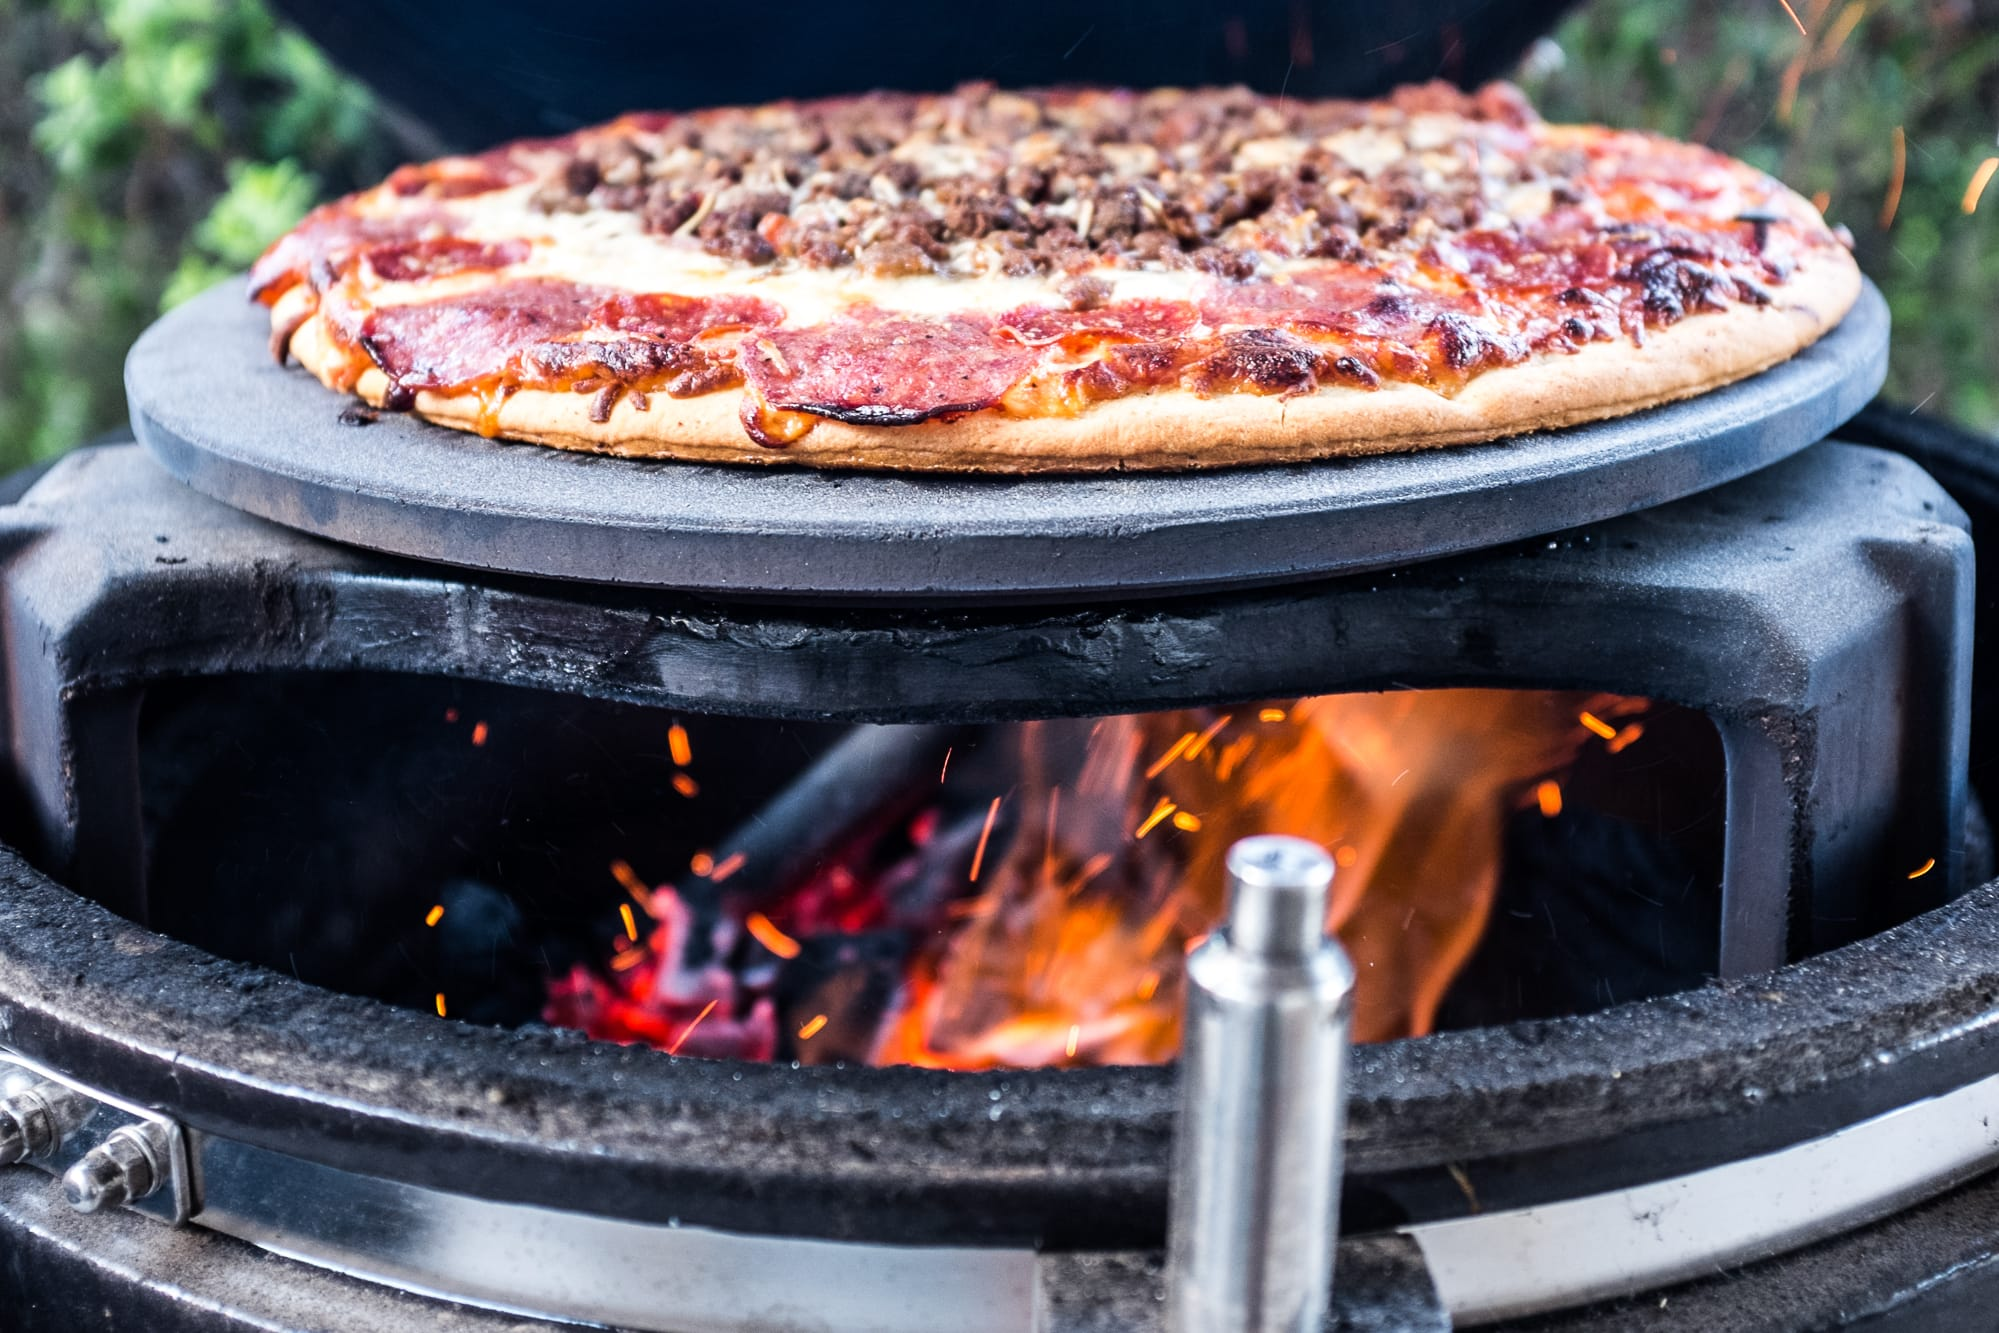 Costco Take'n'Bake pizza in the process of turning into deliciousness with fire